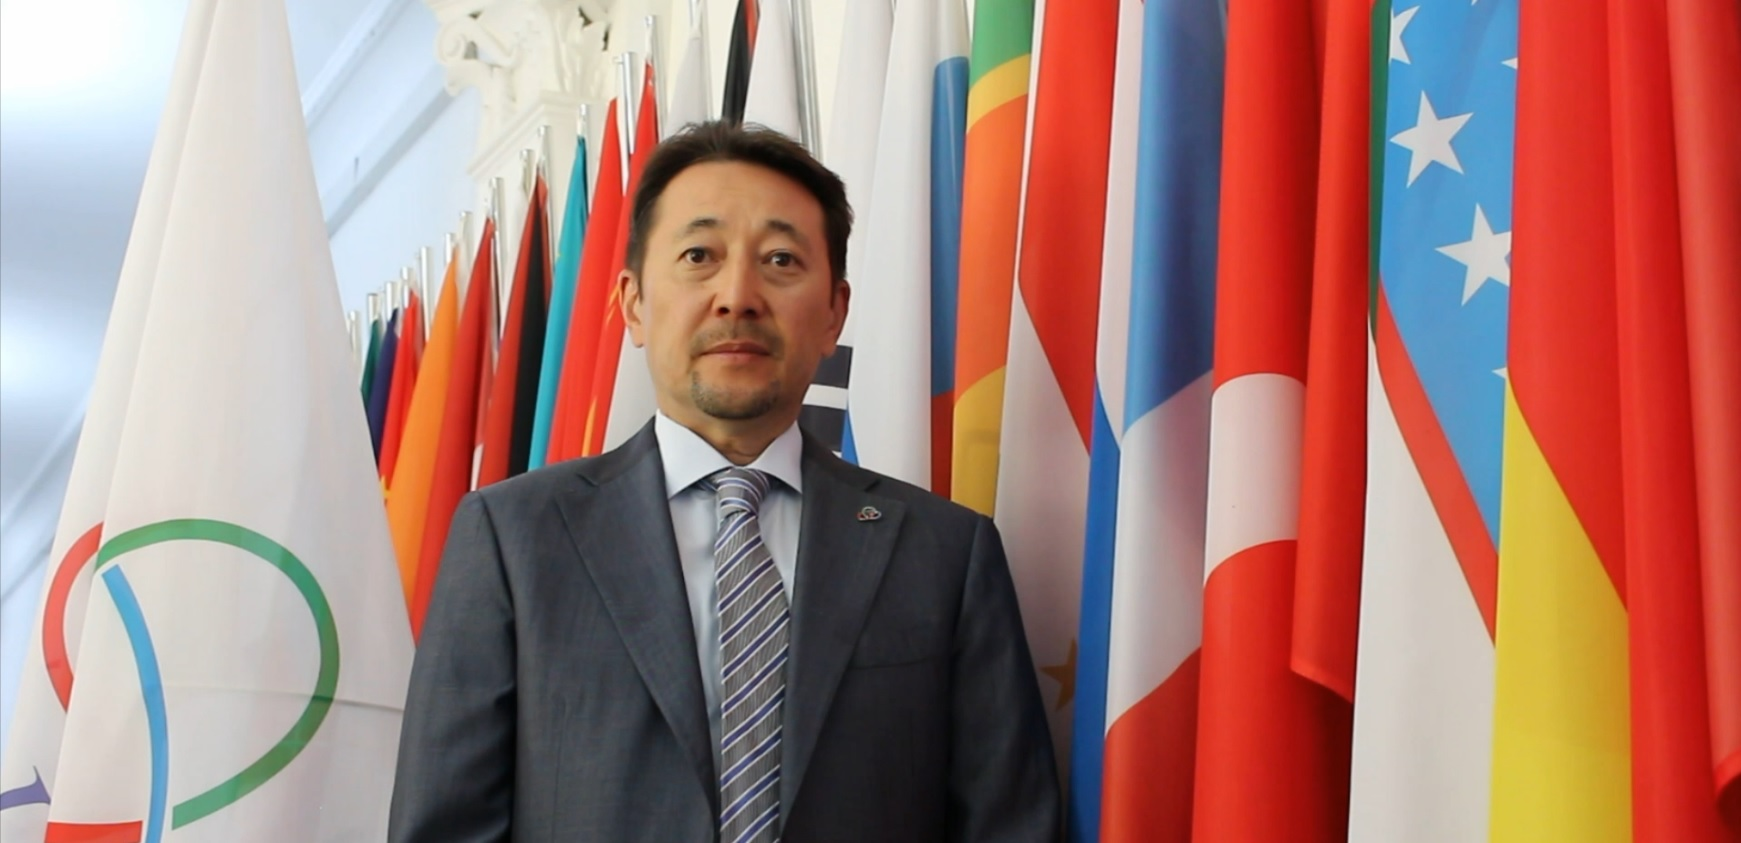 Youth cooperation is the most important factor in ensuring sustainable development of the CICA Member States